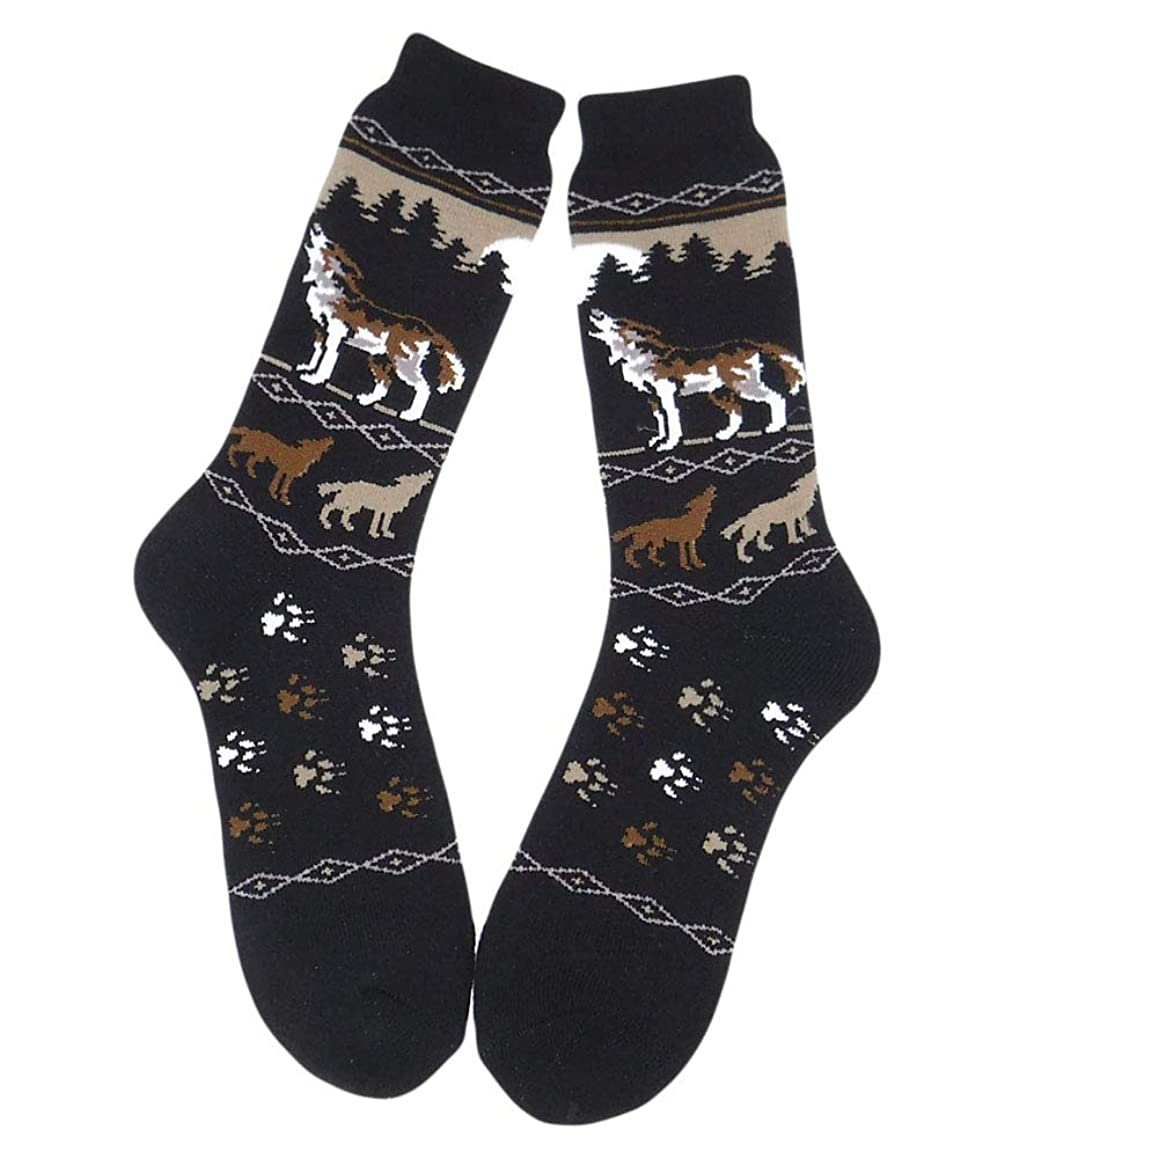 Ace USA Howling Wolf in the Woods Men's Towel Socks One Size Fits Most